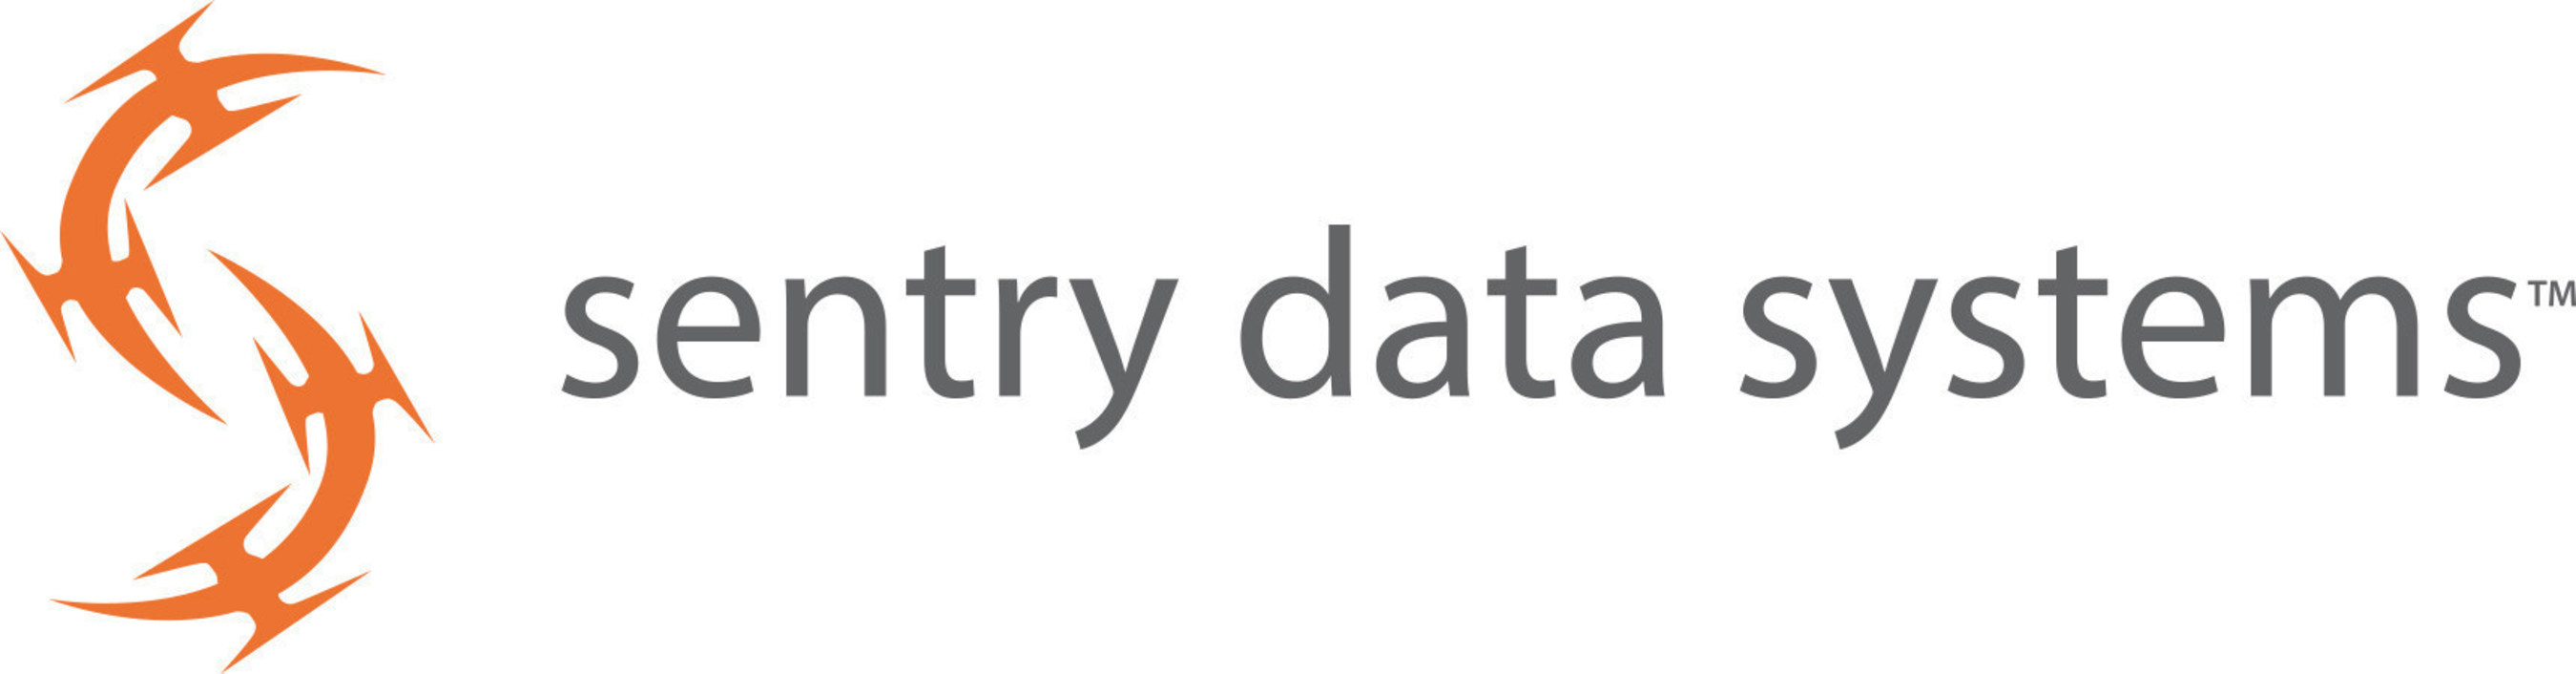 Lisa Scholz joins Sentry Data Systems' executive team. 340B health advocate to head market strategy for tech leader.